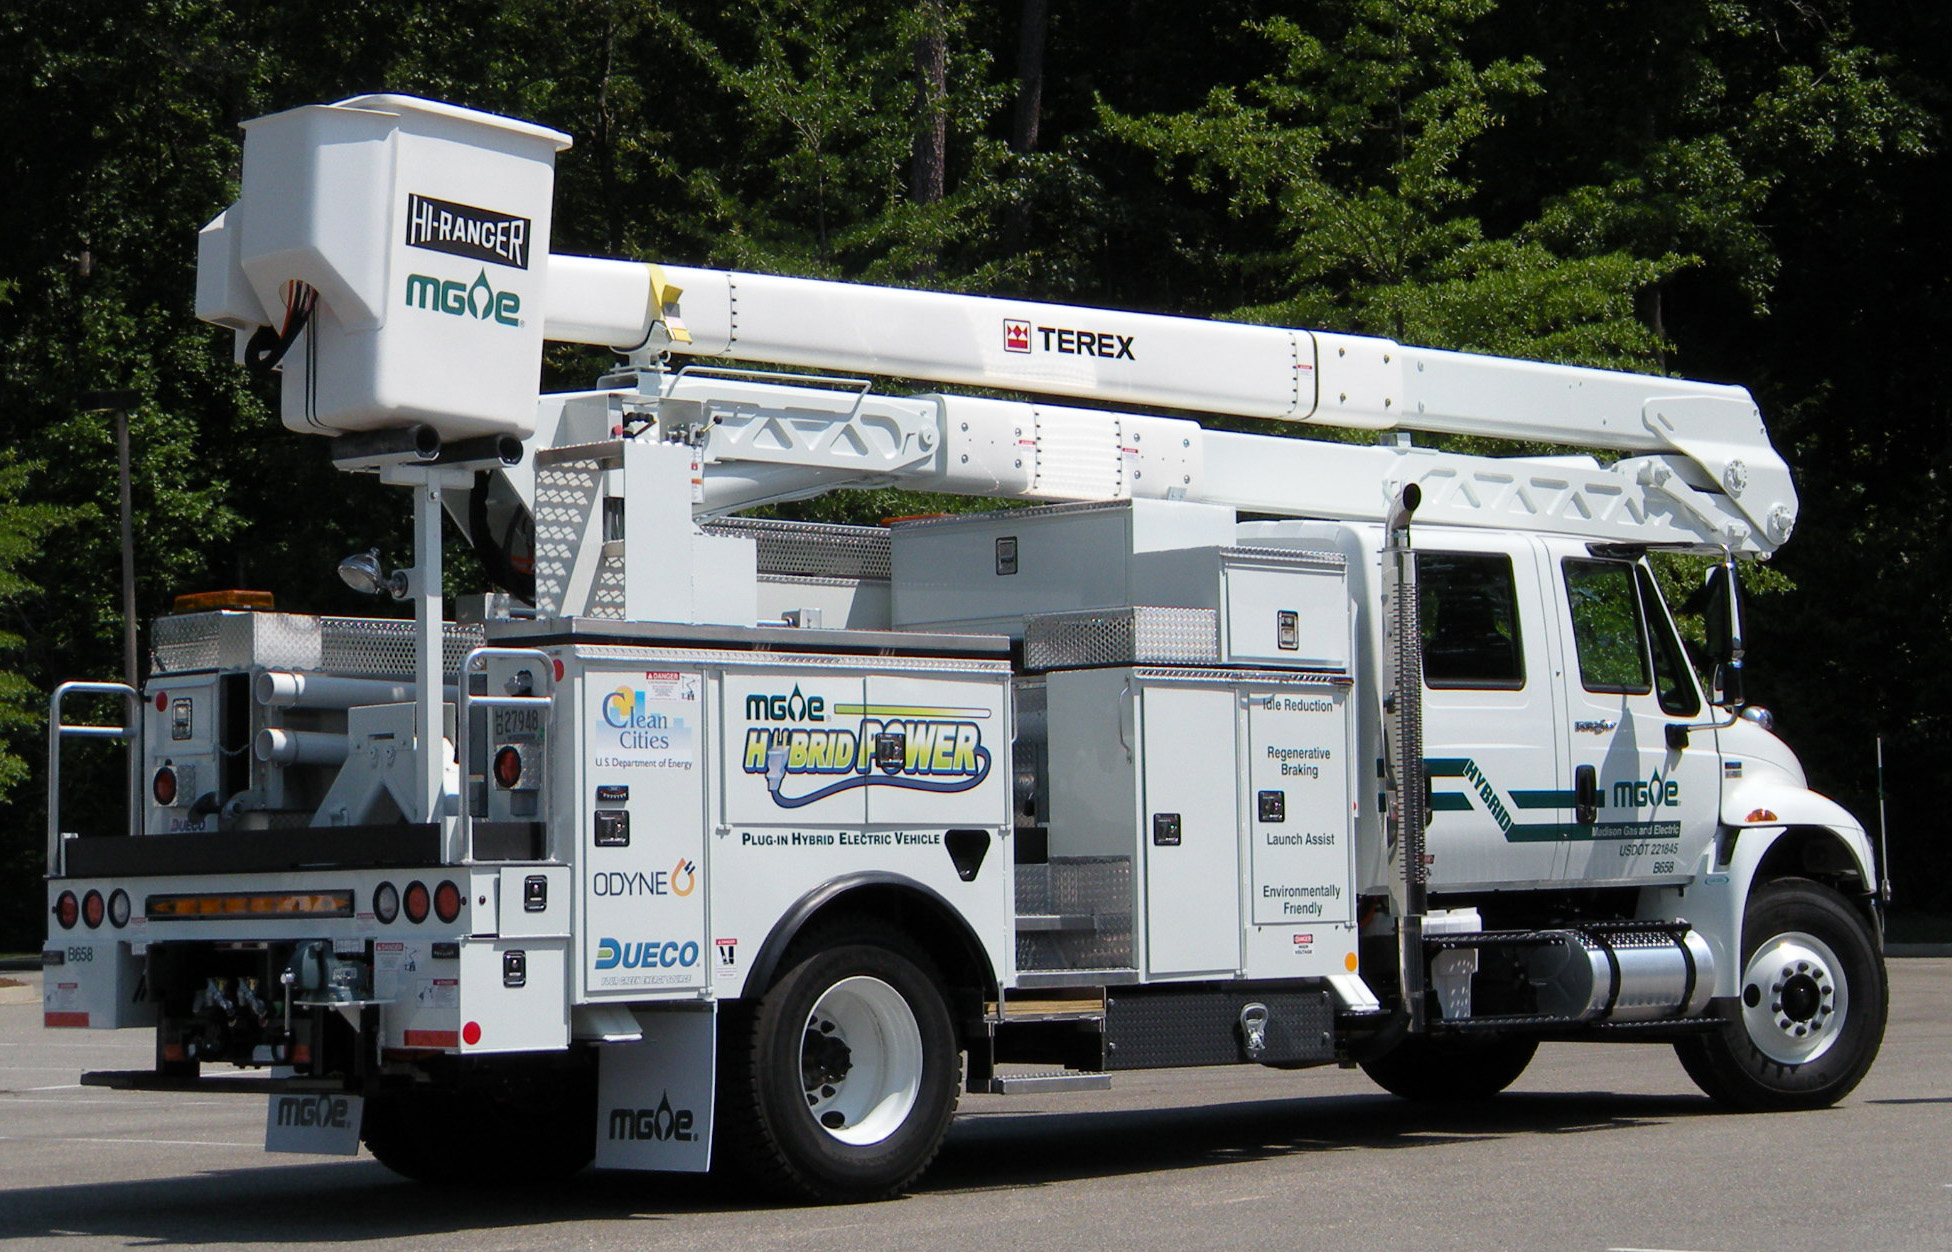 Hybrid Pickup Truck >> Go Green...Madison Gas & Electric Chooses Plug-In Hybrid for Fleet - PR.com